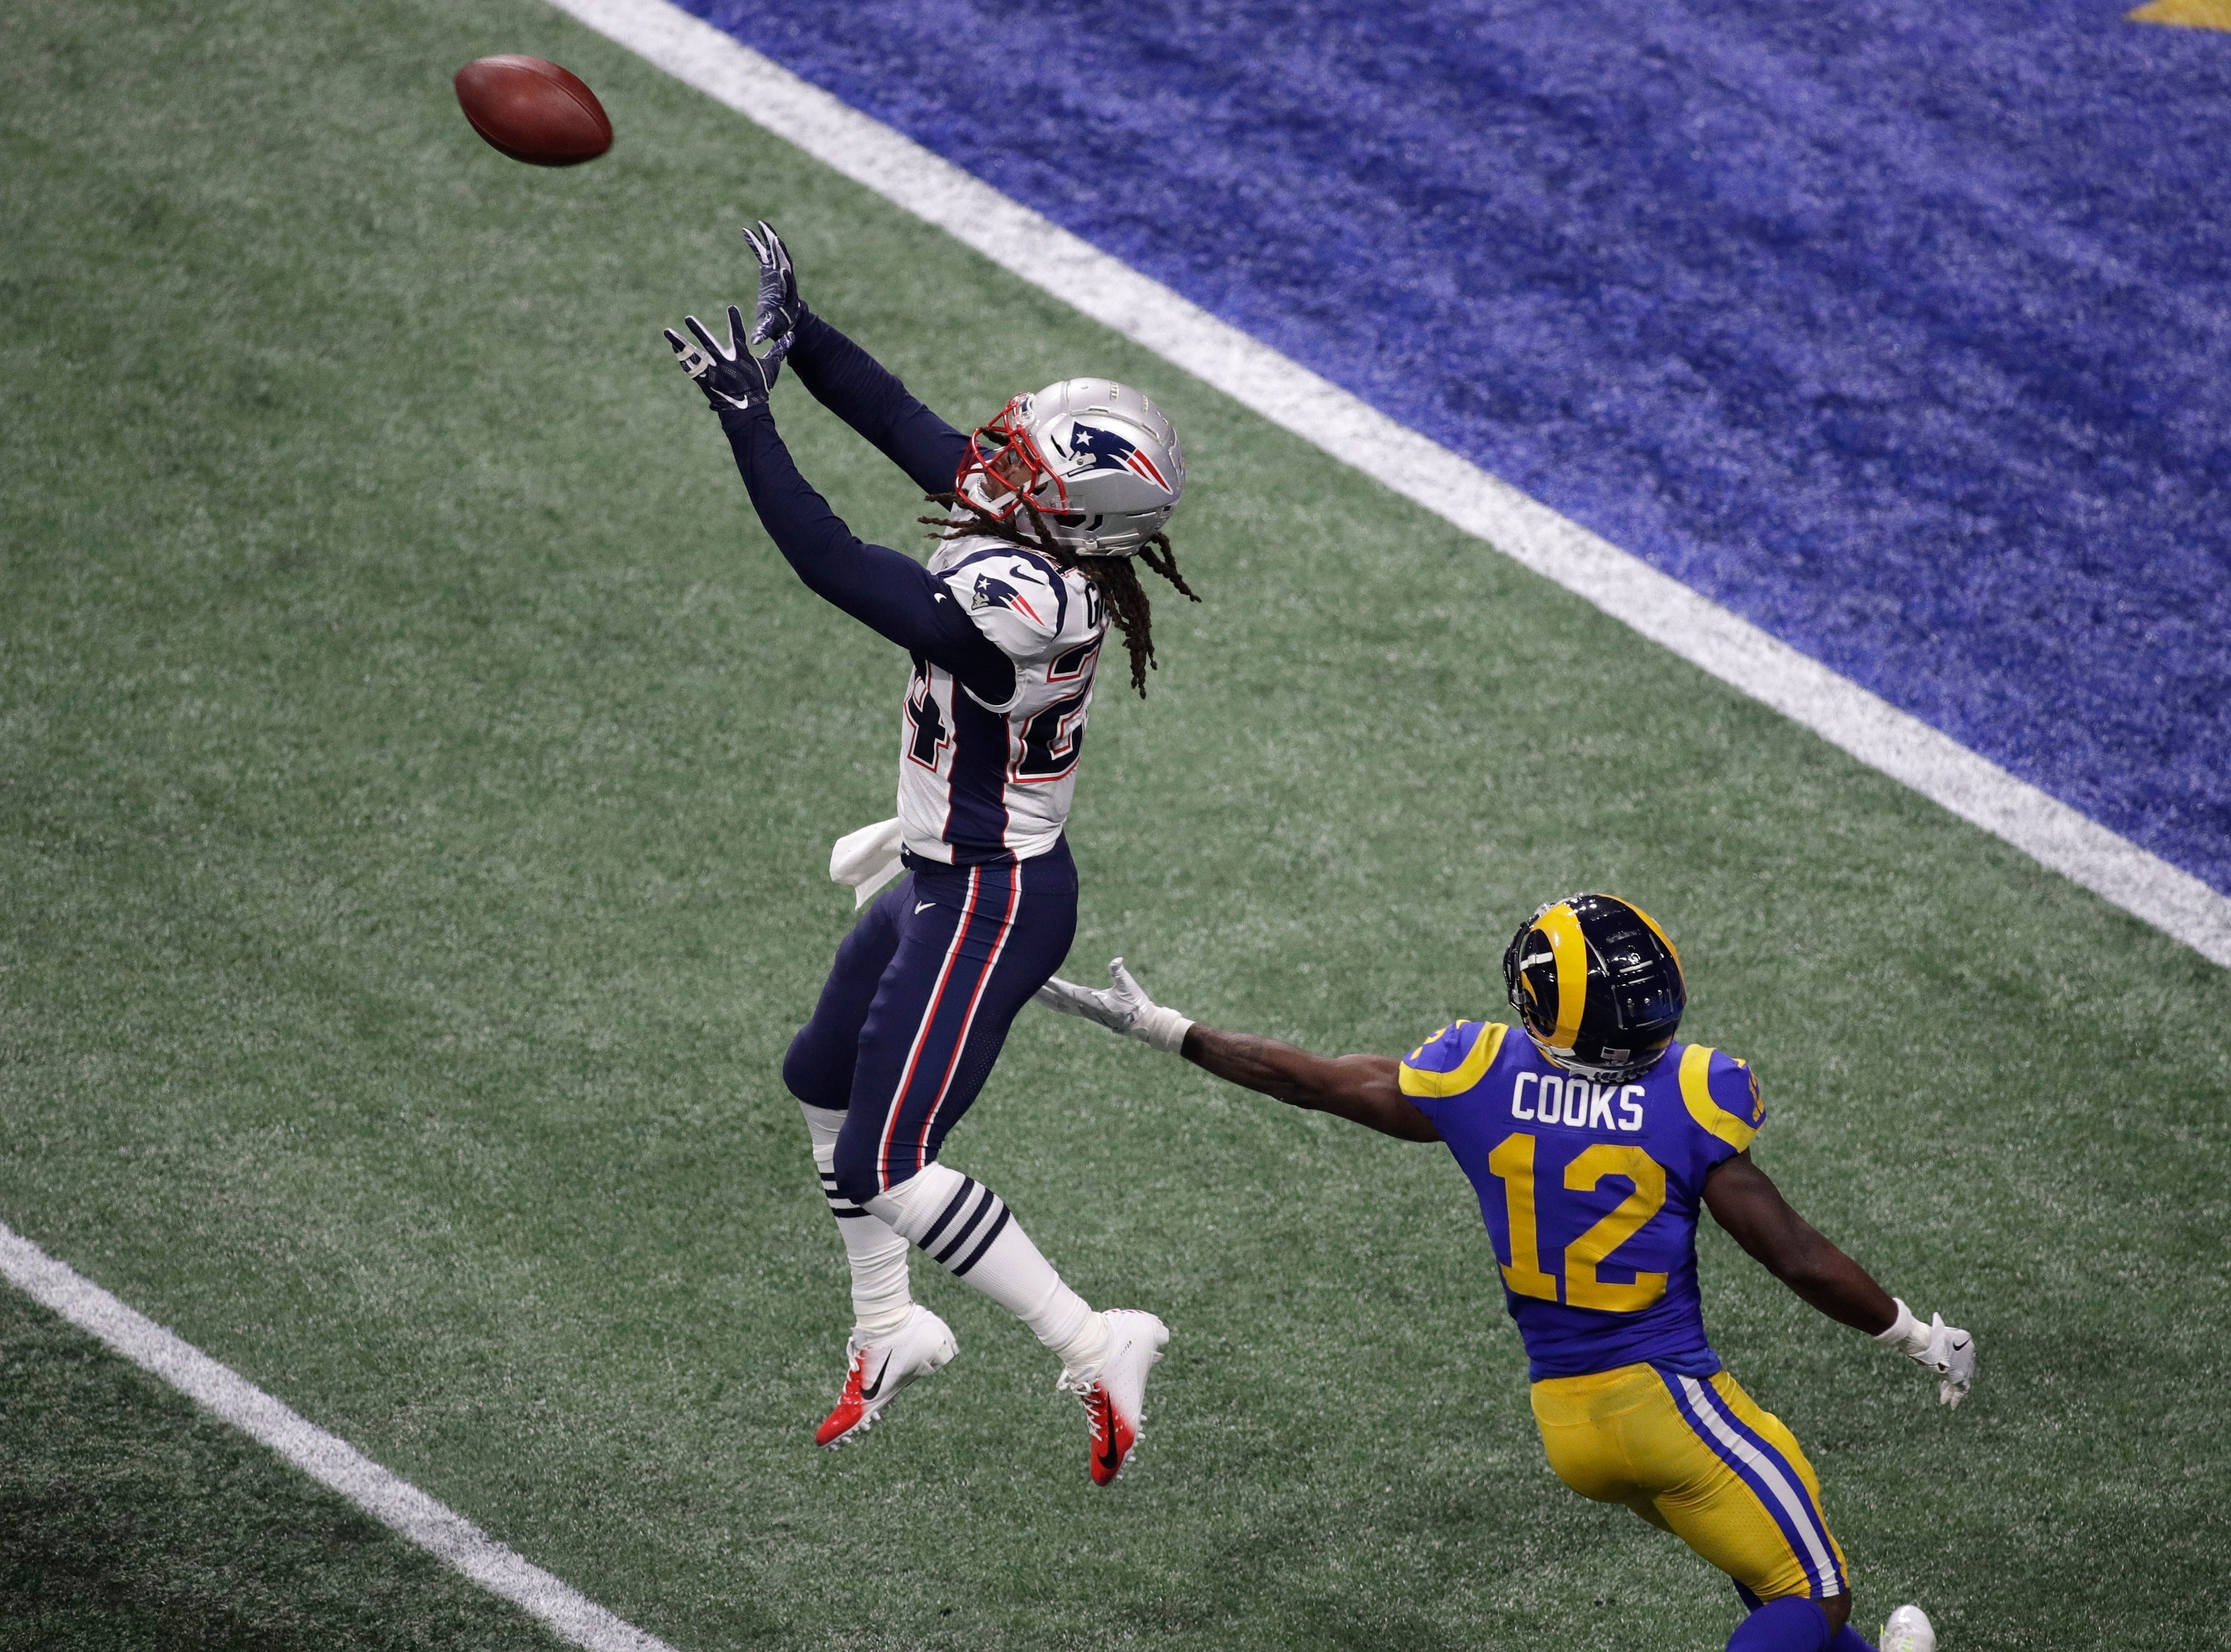 New England Patriots' Stephon Gilmore (24) prepares to intercept the ball against Los Angeles Rams' Brandin Cooks (12) during the second half.